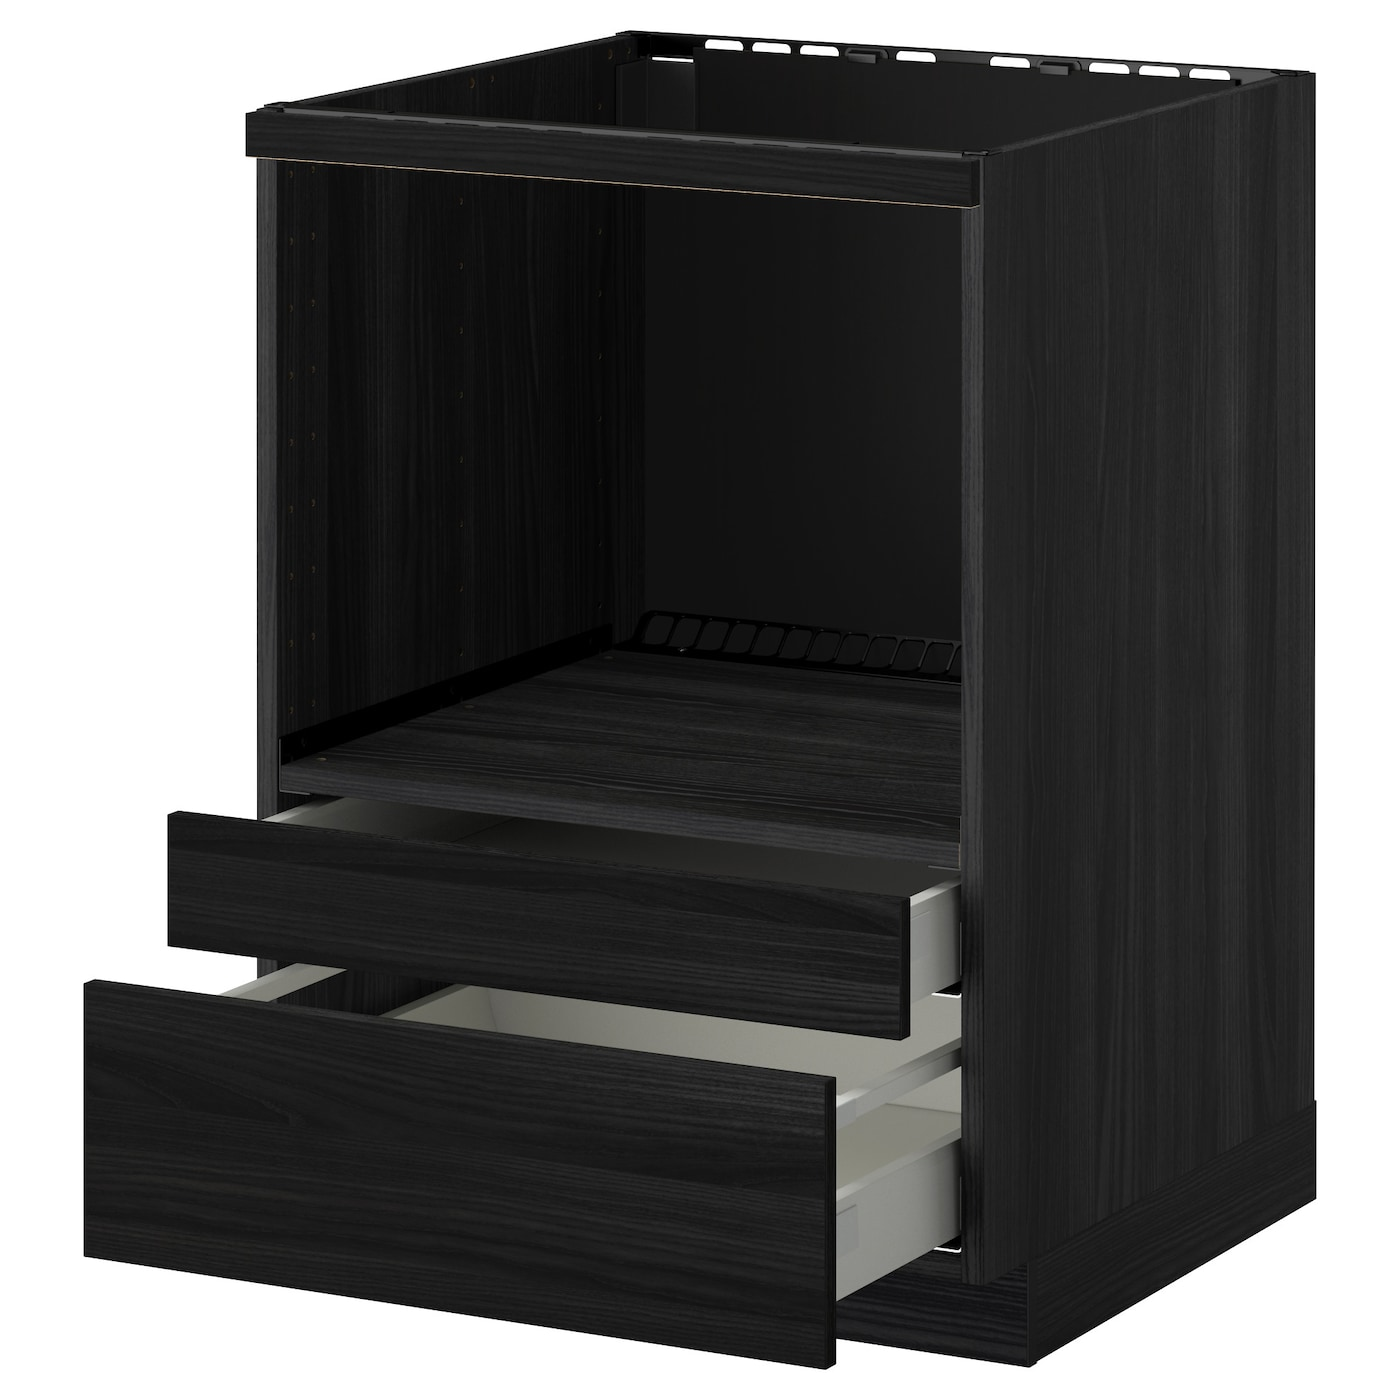 metod maximera meuble pour micro combi tiroirs noir tingsryd noir 60x60 cm ikea. Black Bedroom Furniture Sets. Home Design Ideas